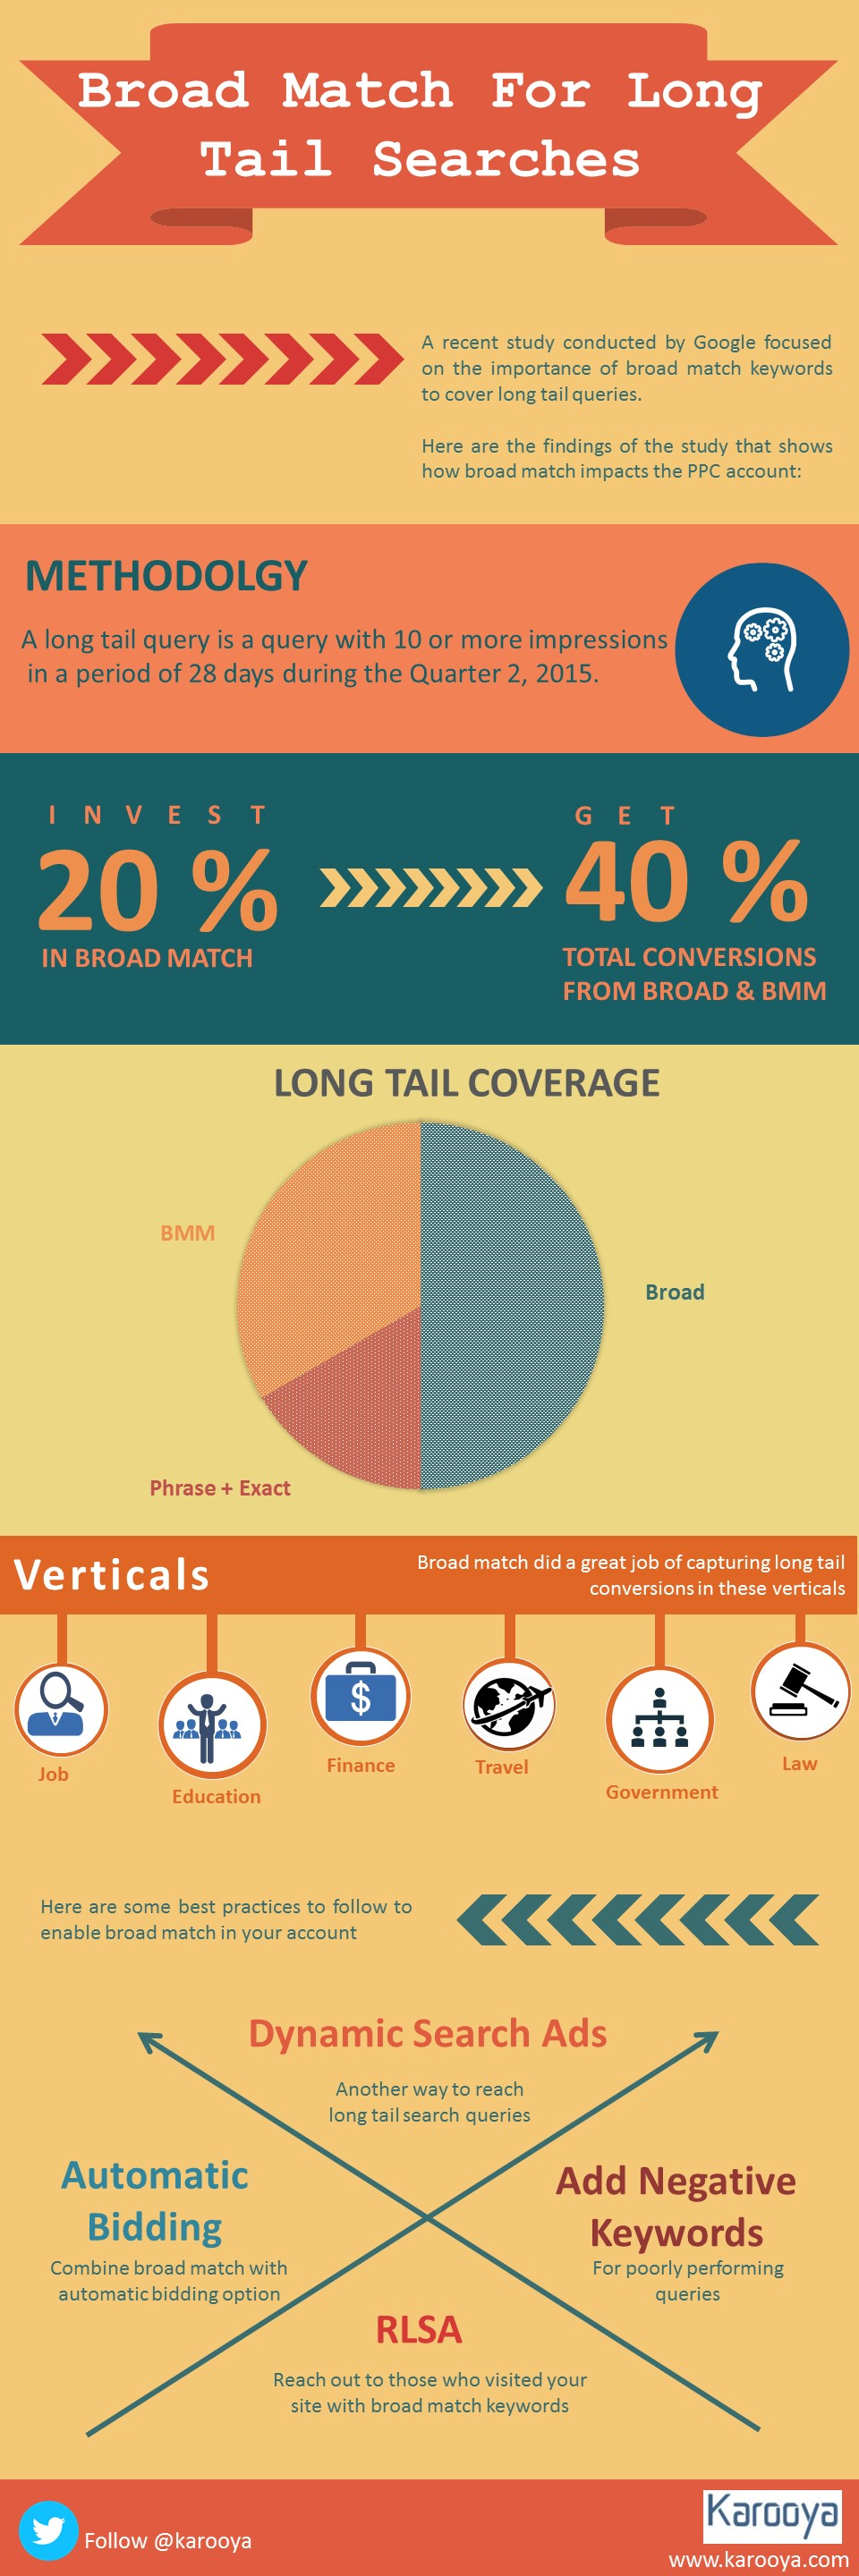 Broad Match For Long Tail Searches